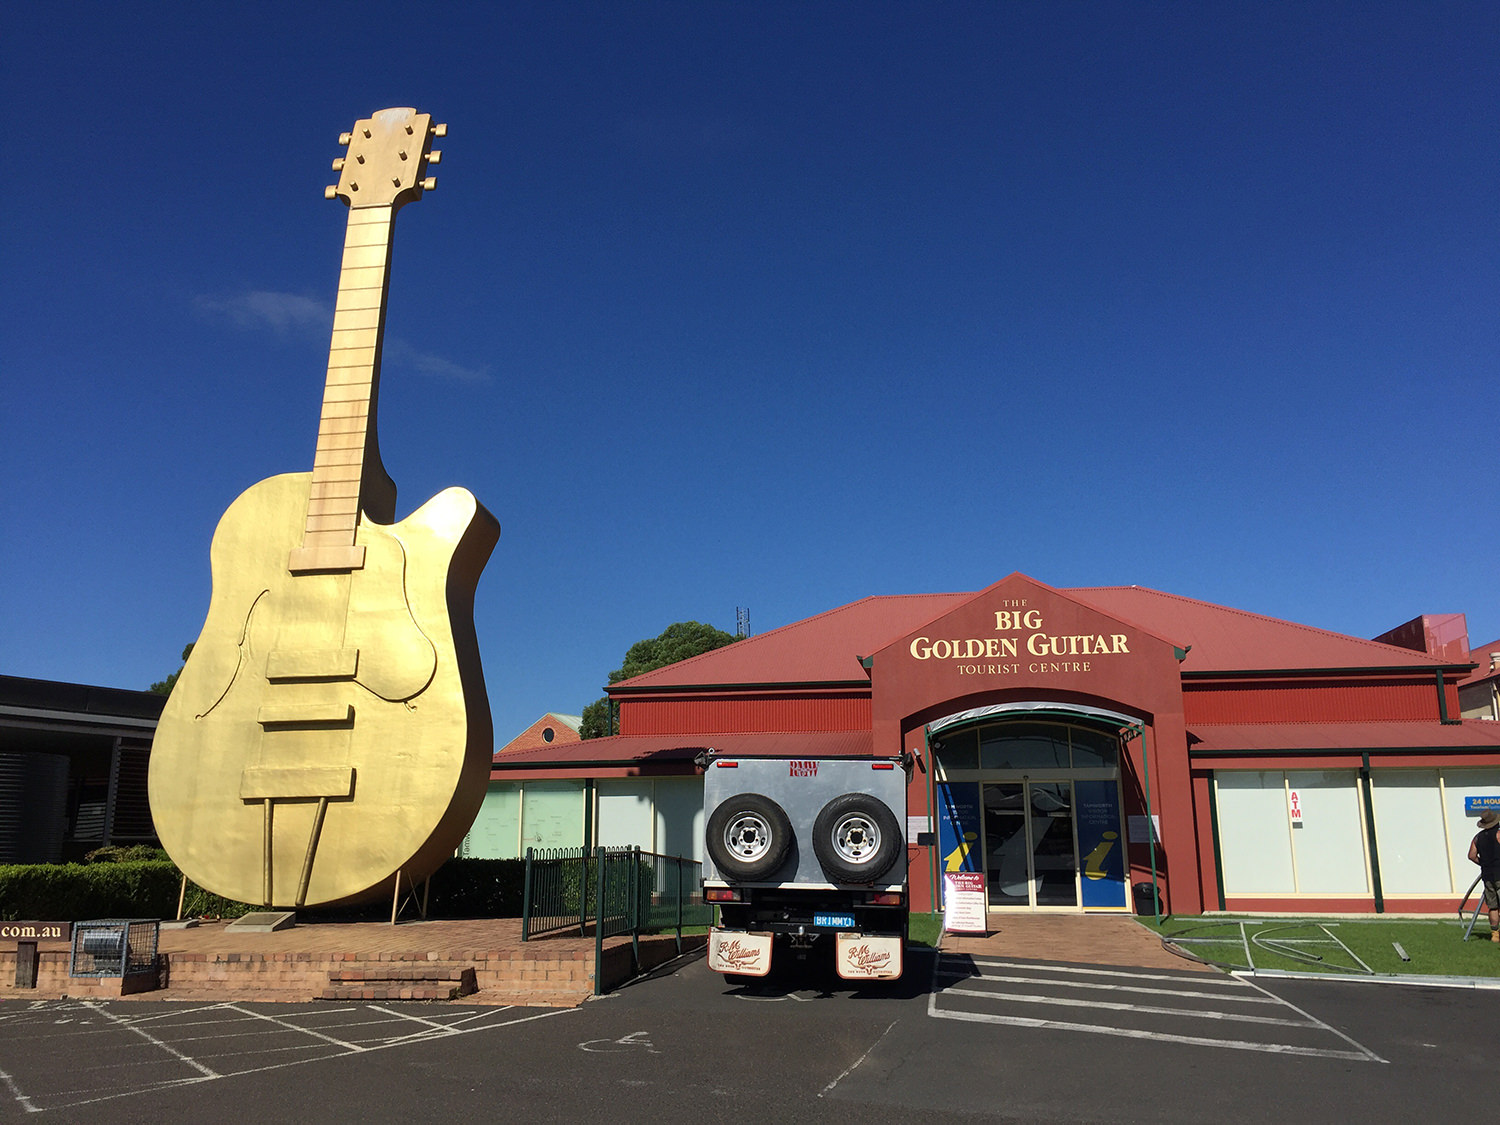 The Golden Guitar in Tamworth, NSW, Australia